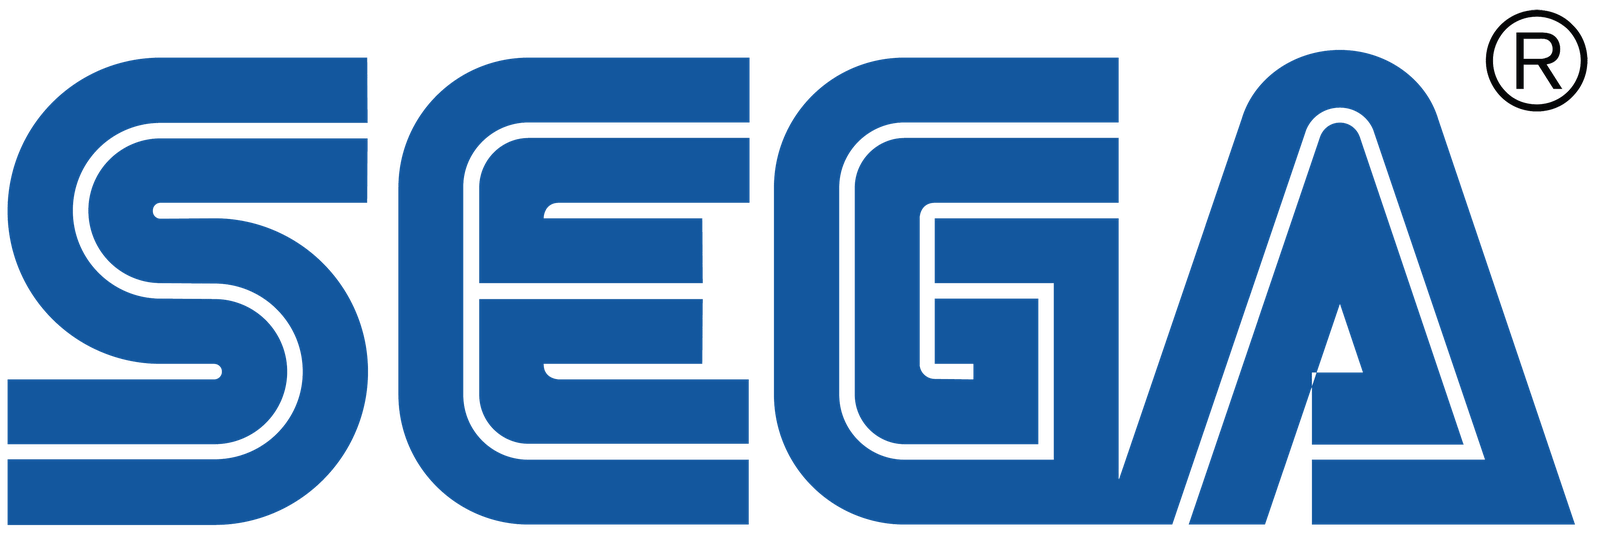 Sega Teases Us About an Upcoming Announcement